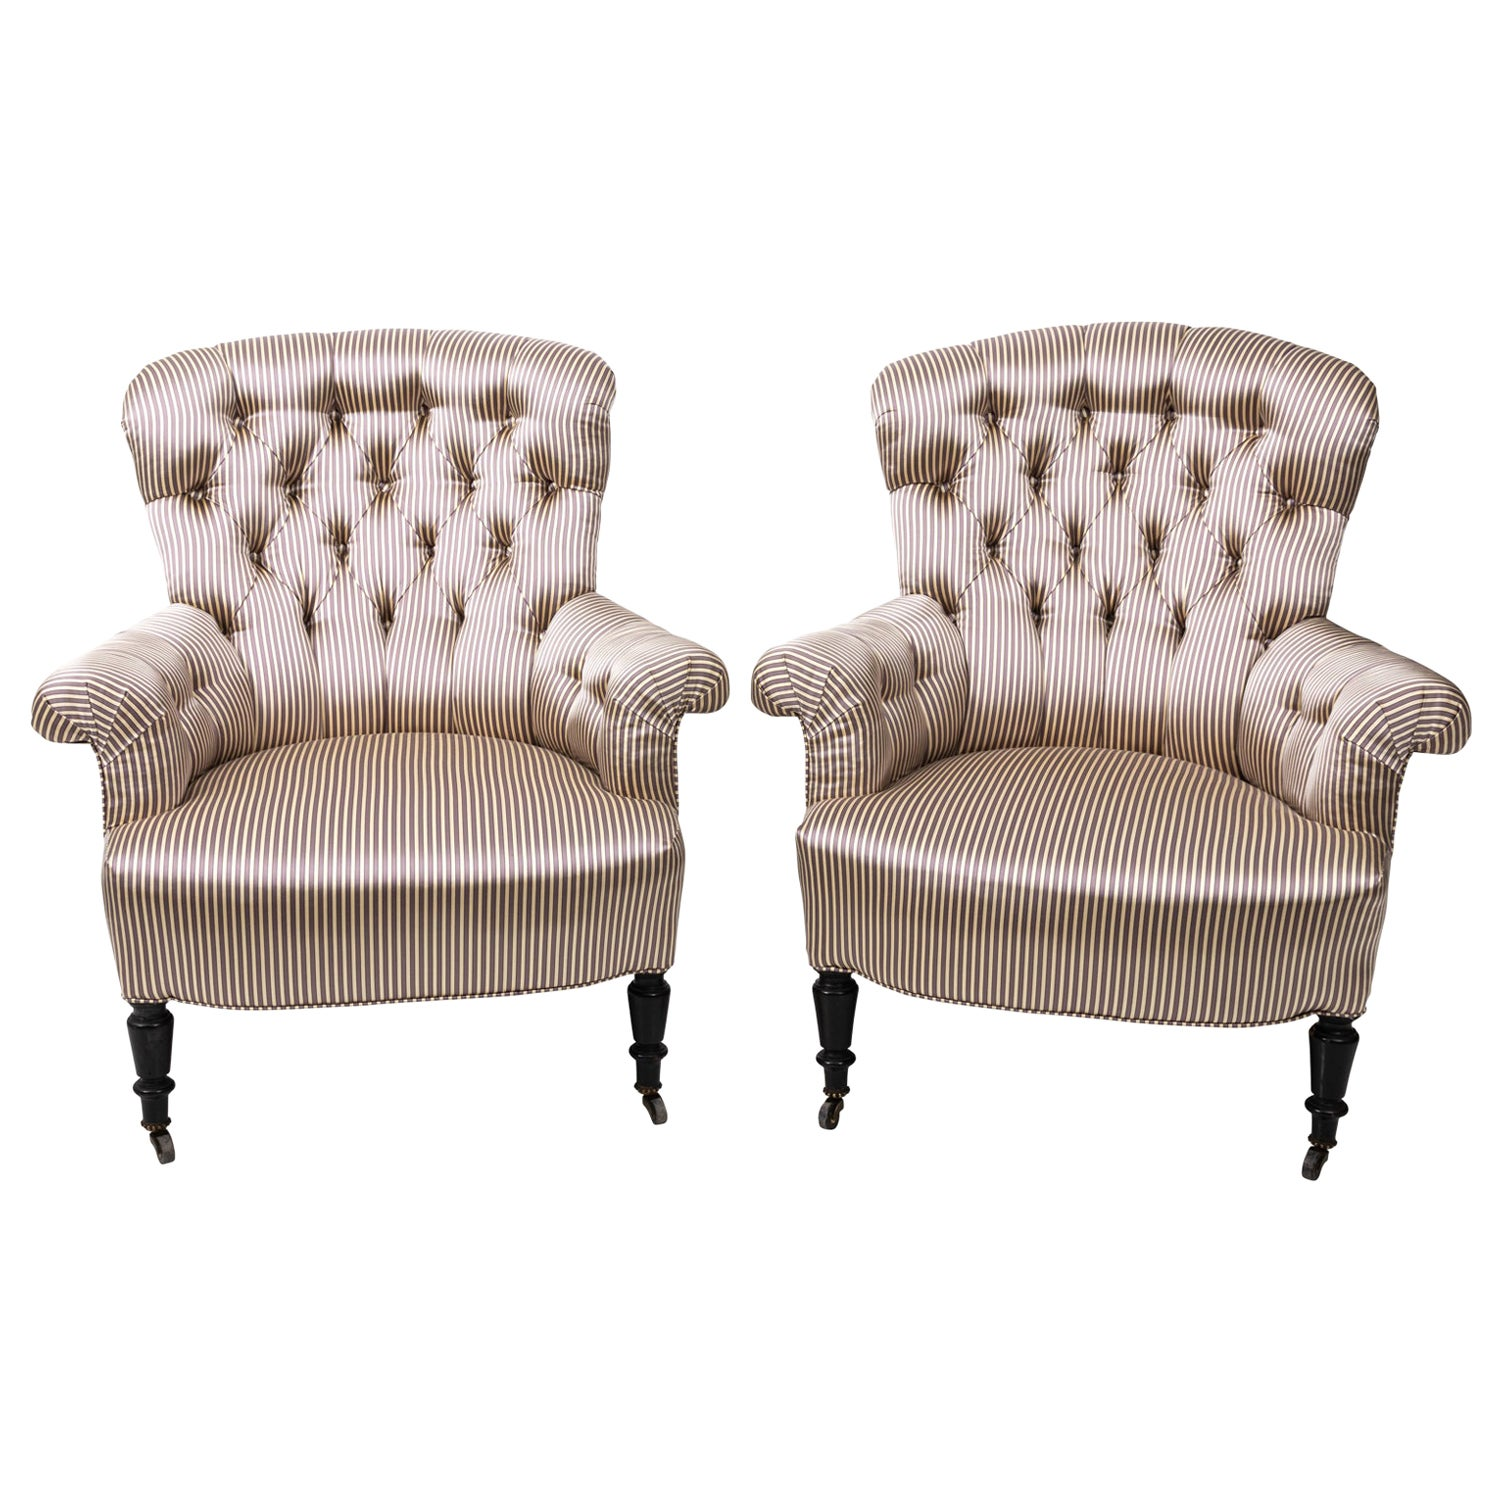 Pair of Napoleon III Upholstered Chairs